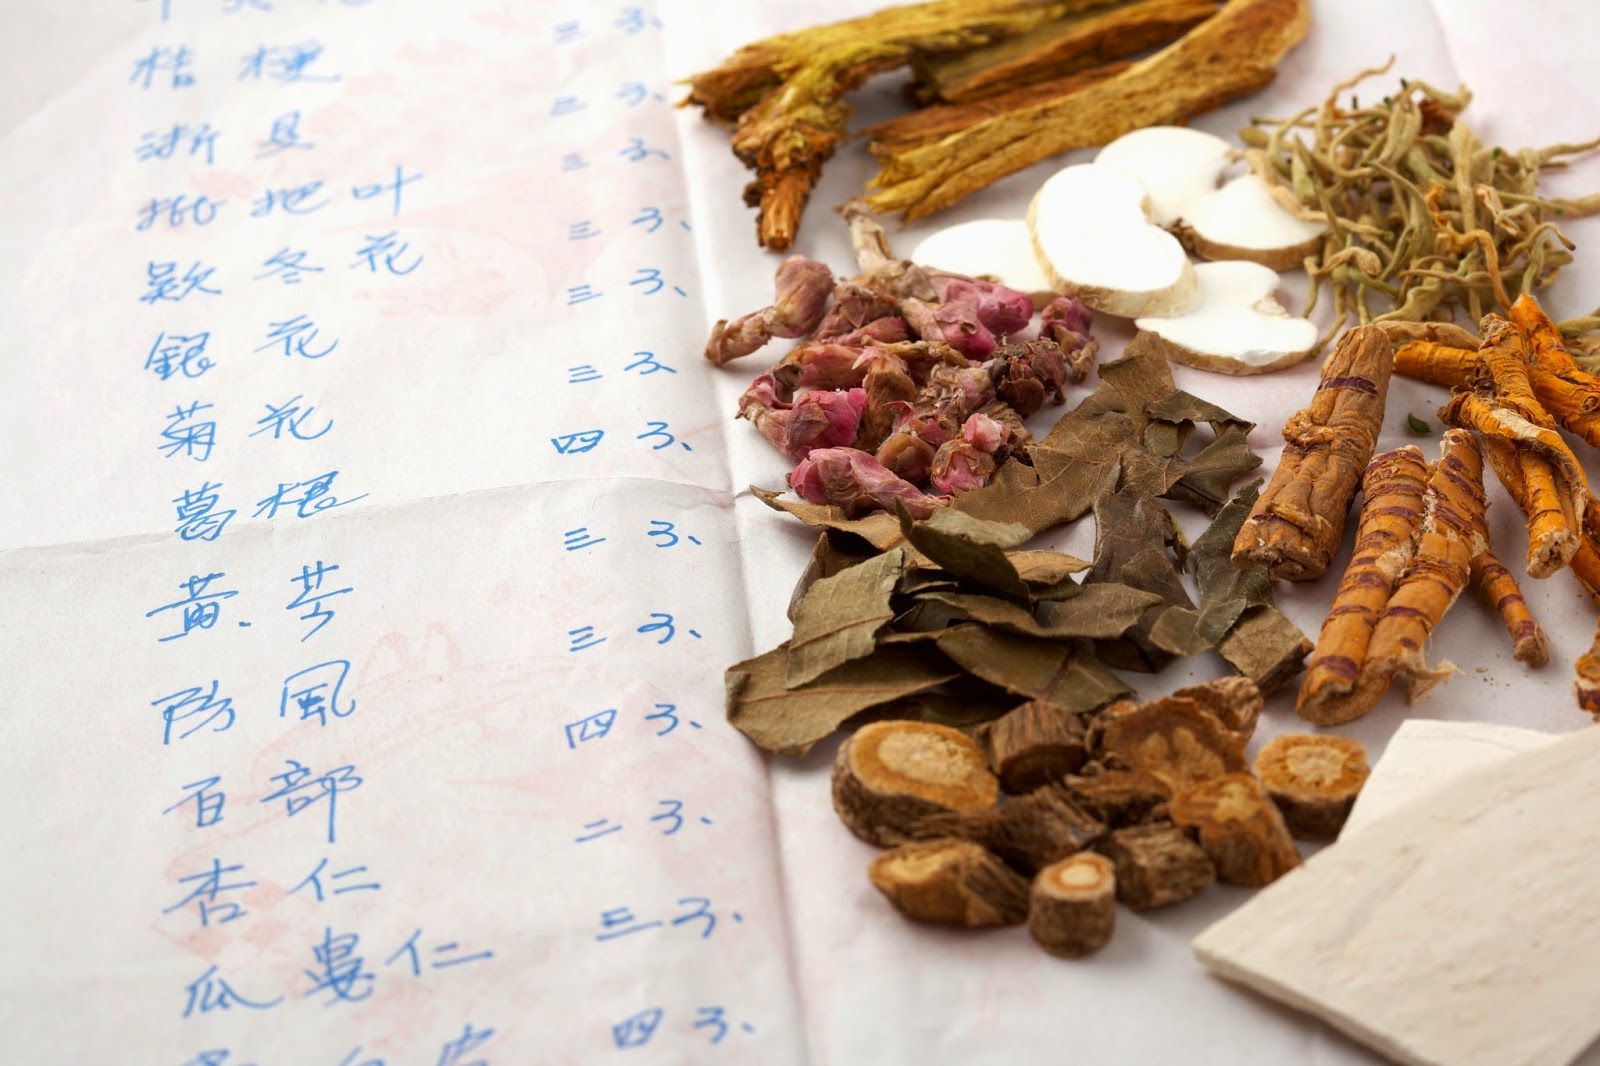 the effect of traditional chinese medicine Good life habits according to chinese medicine lifestyle and behavior are determinant factors for good health according to chinese.